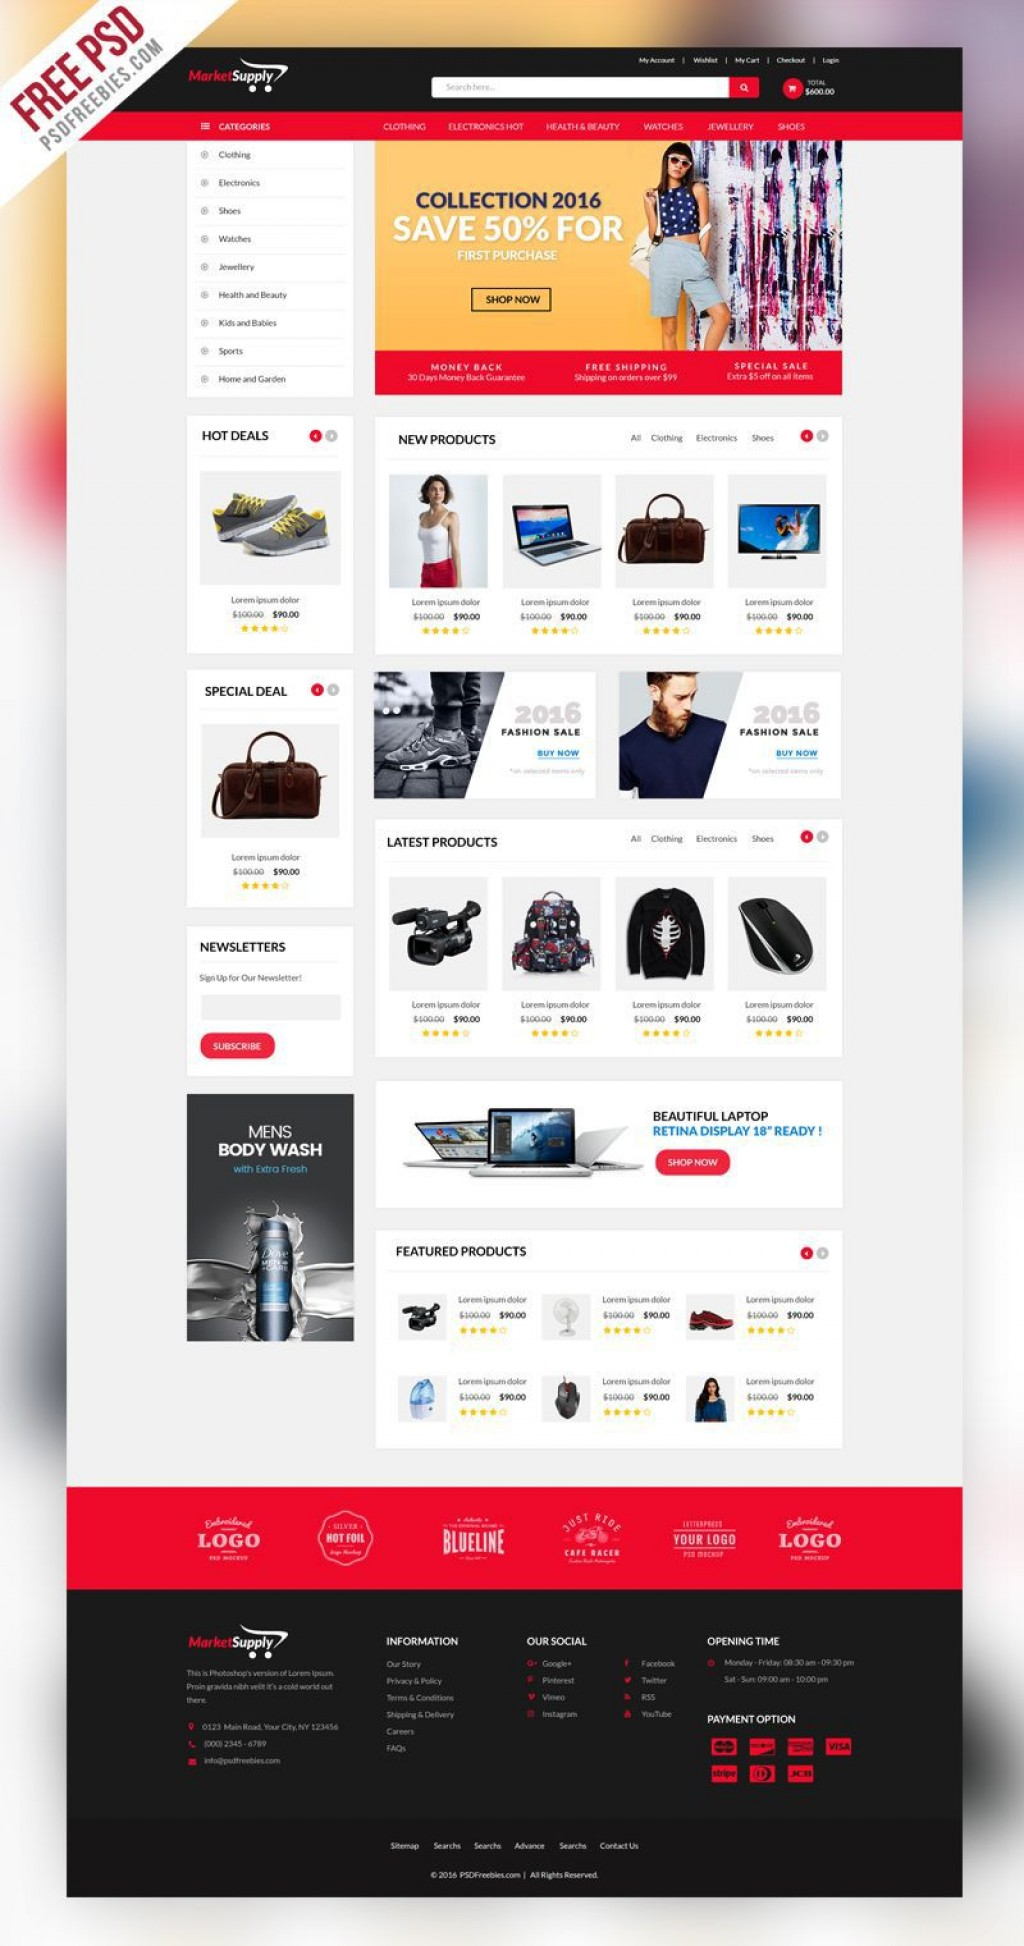 009 Magnificent Free Ecommerce Website Template Download Idea  Shopping Cart Bootstrap 3Large